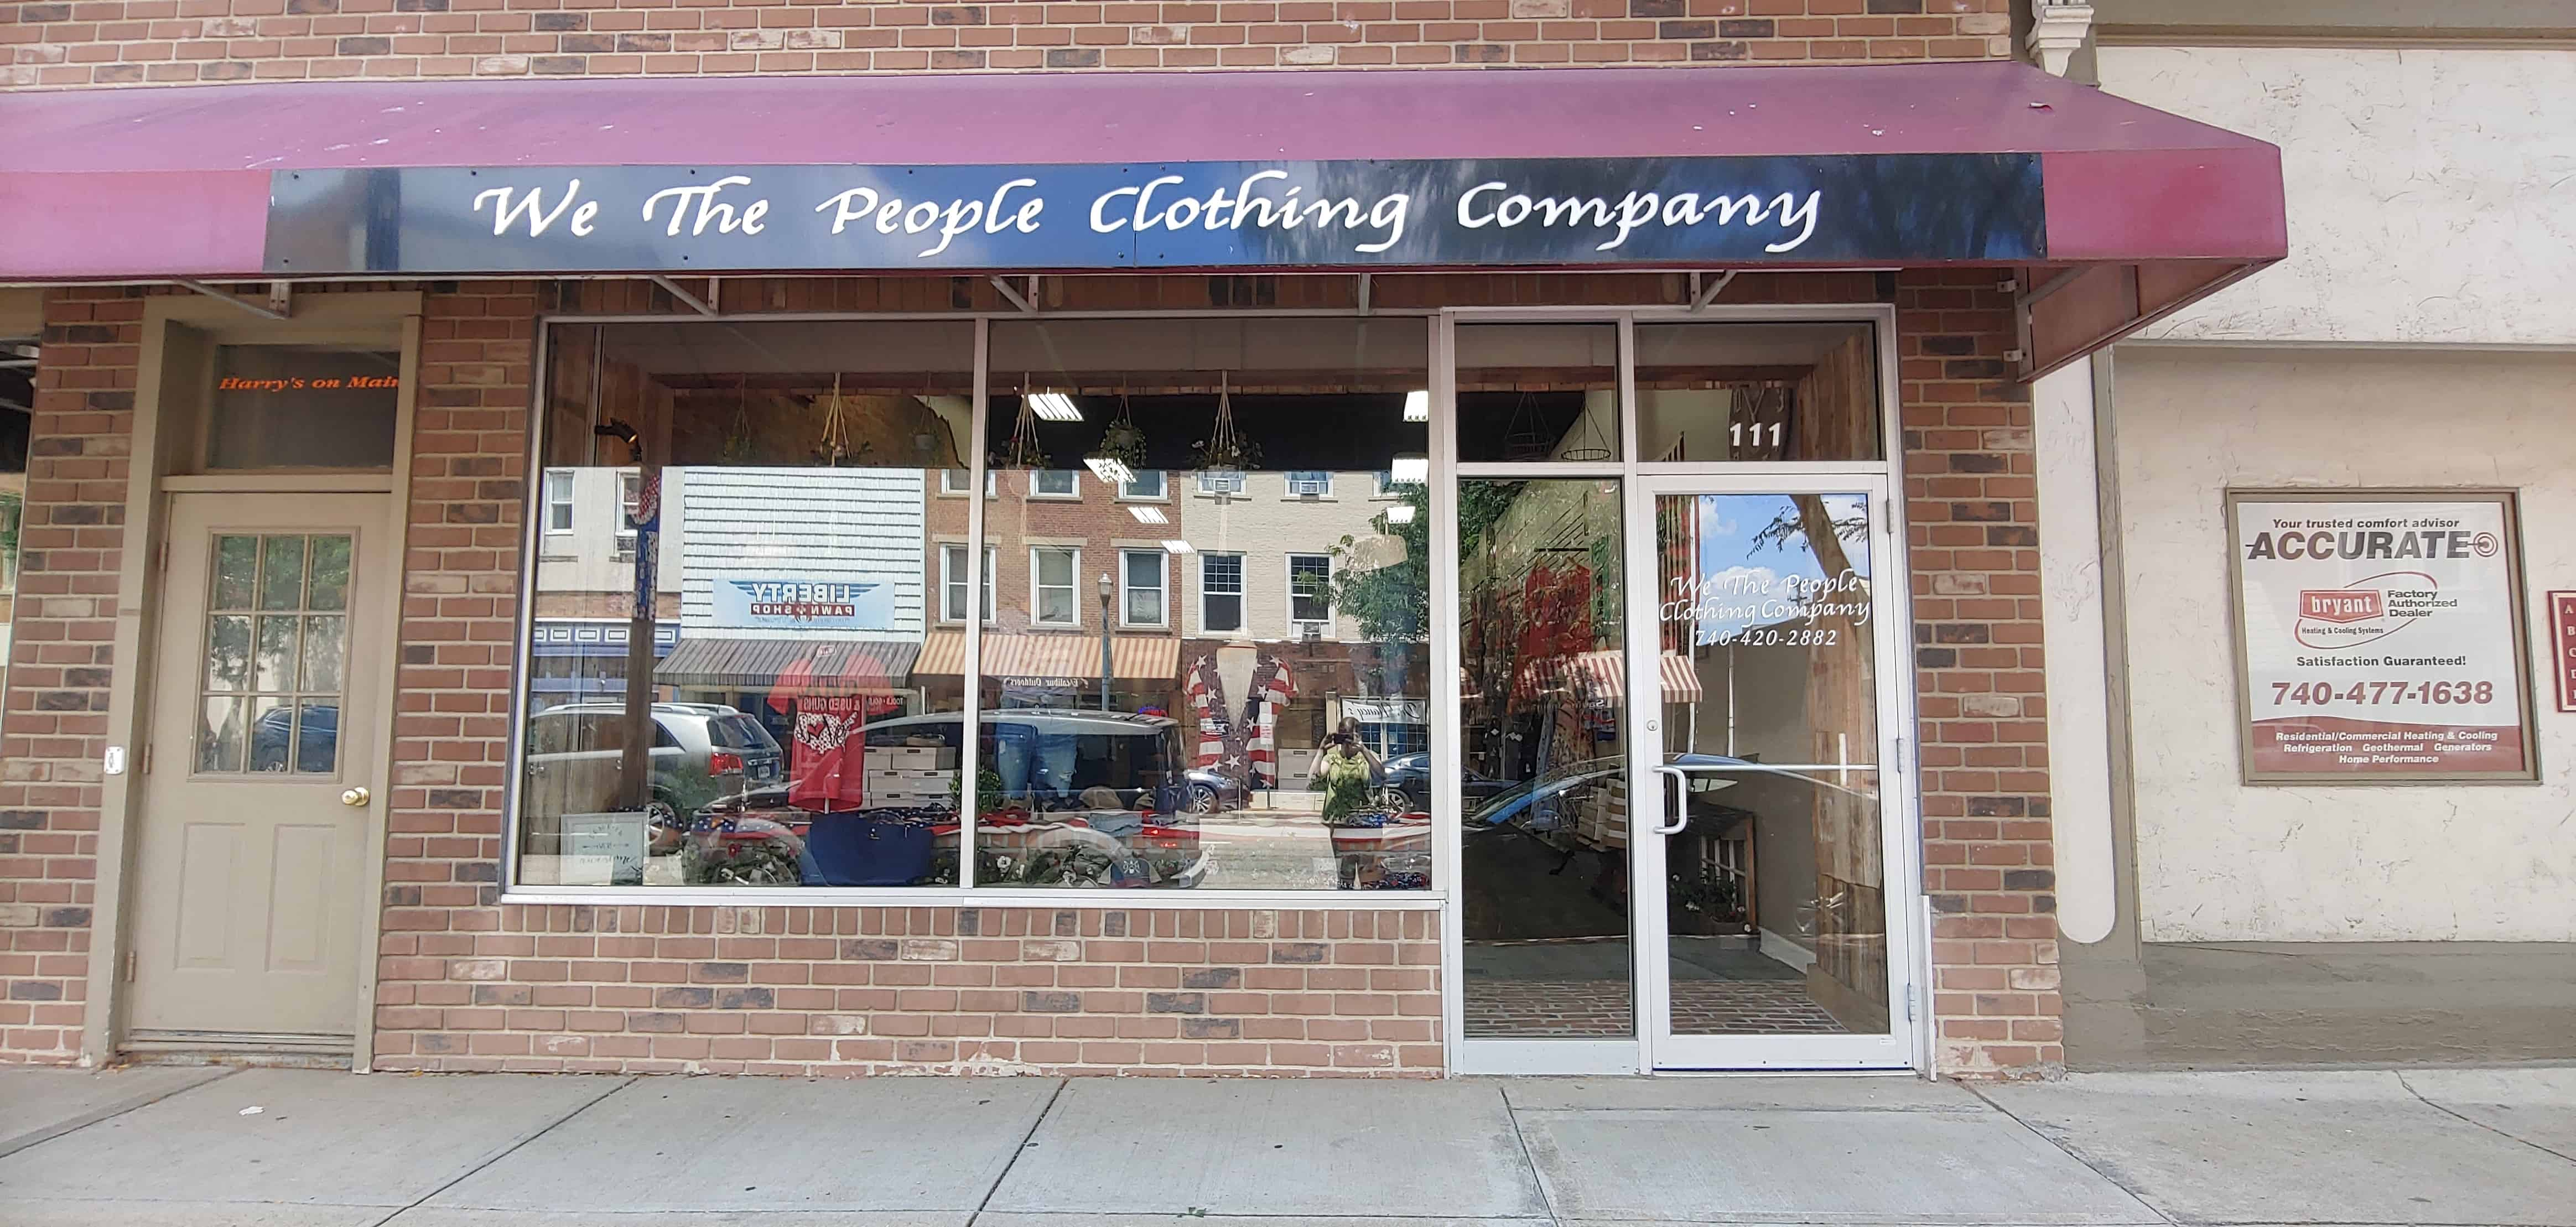 We The People Clothing Co. in Circleville, Ohio